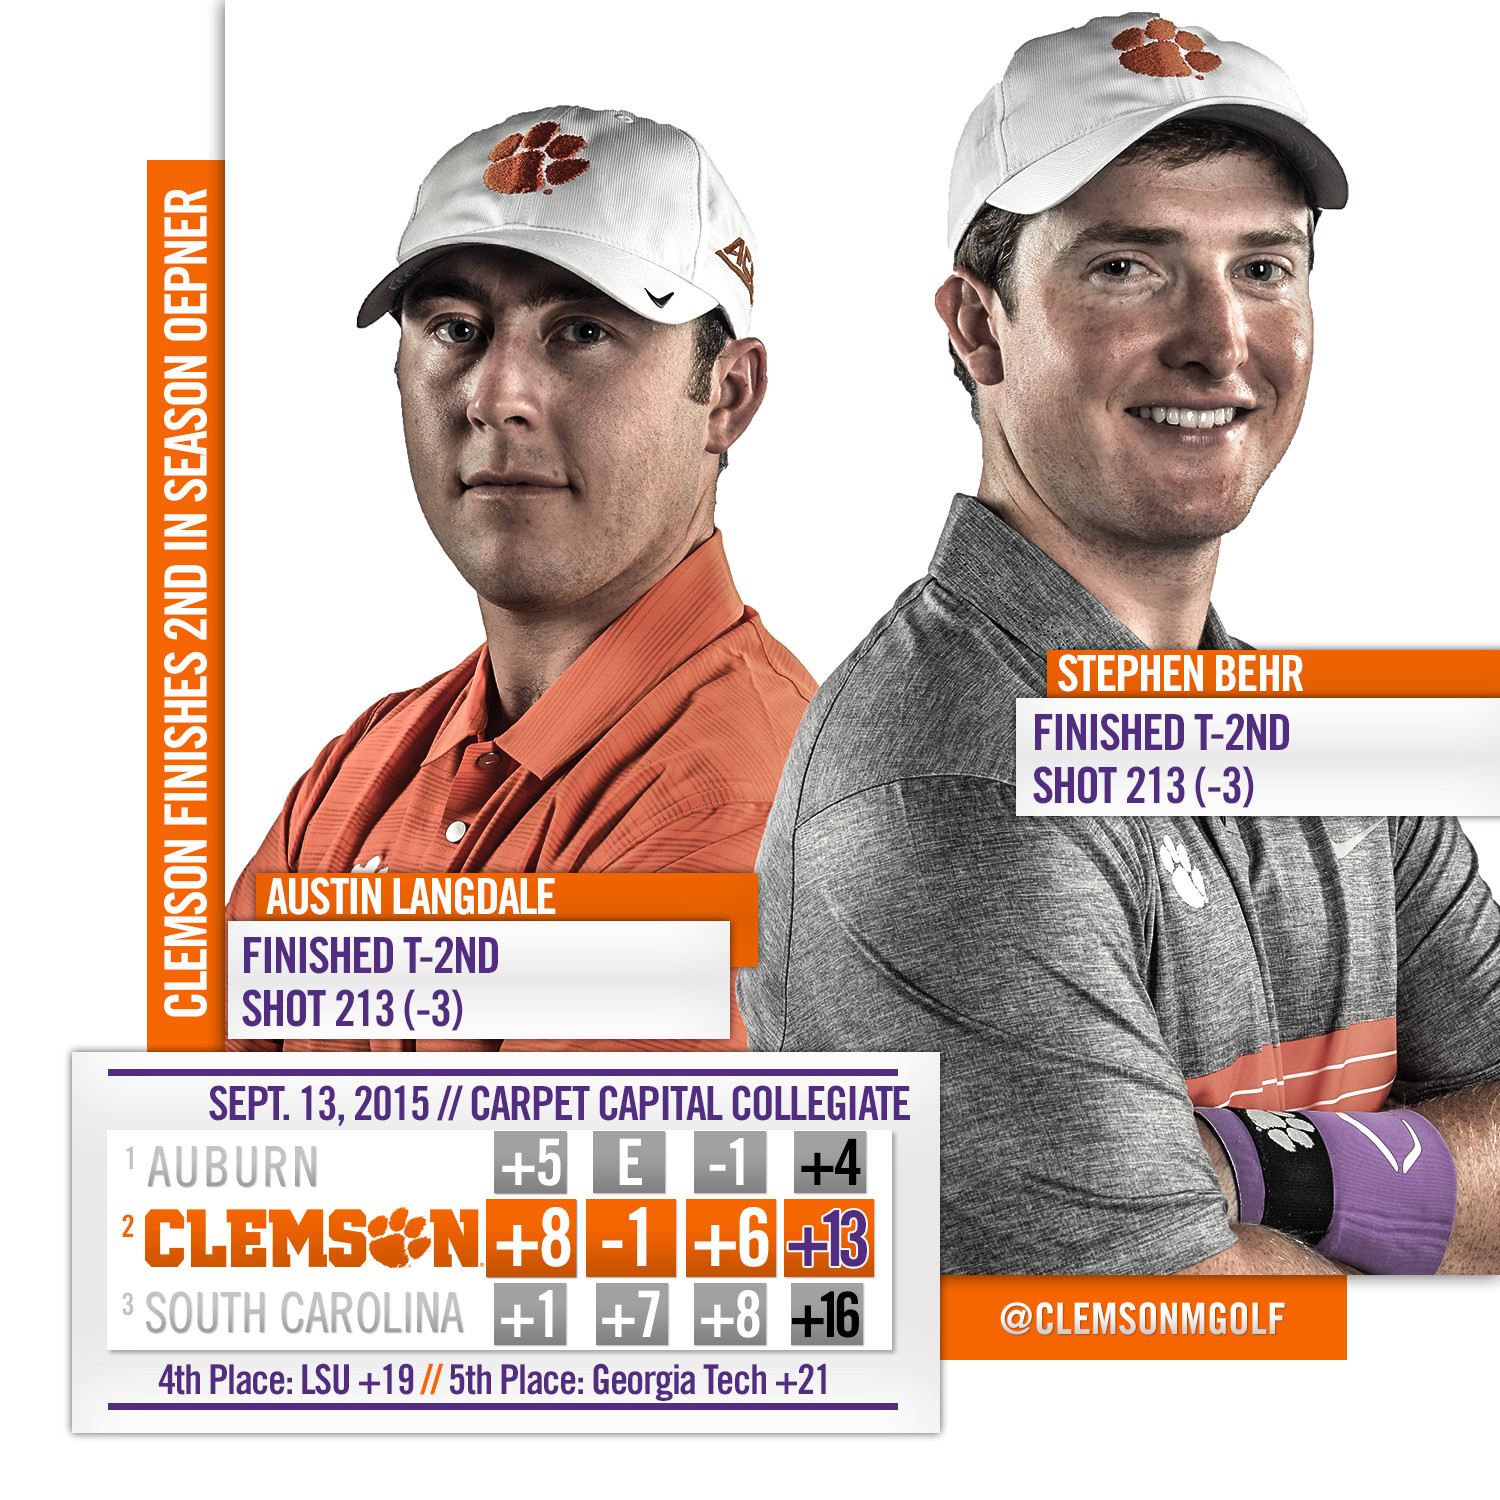 Clemson Finishes Second at Carpet Classic